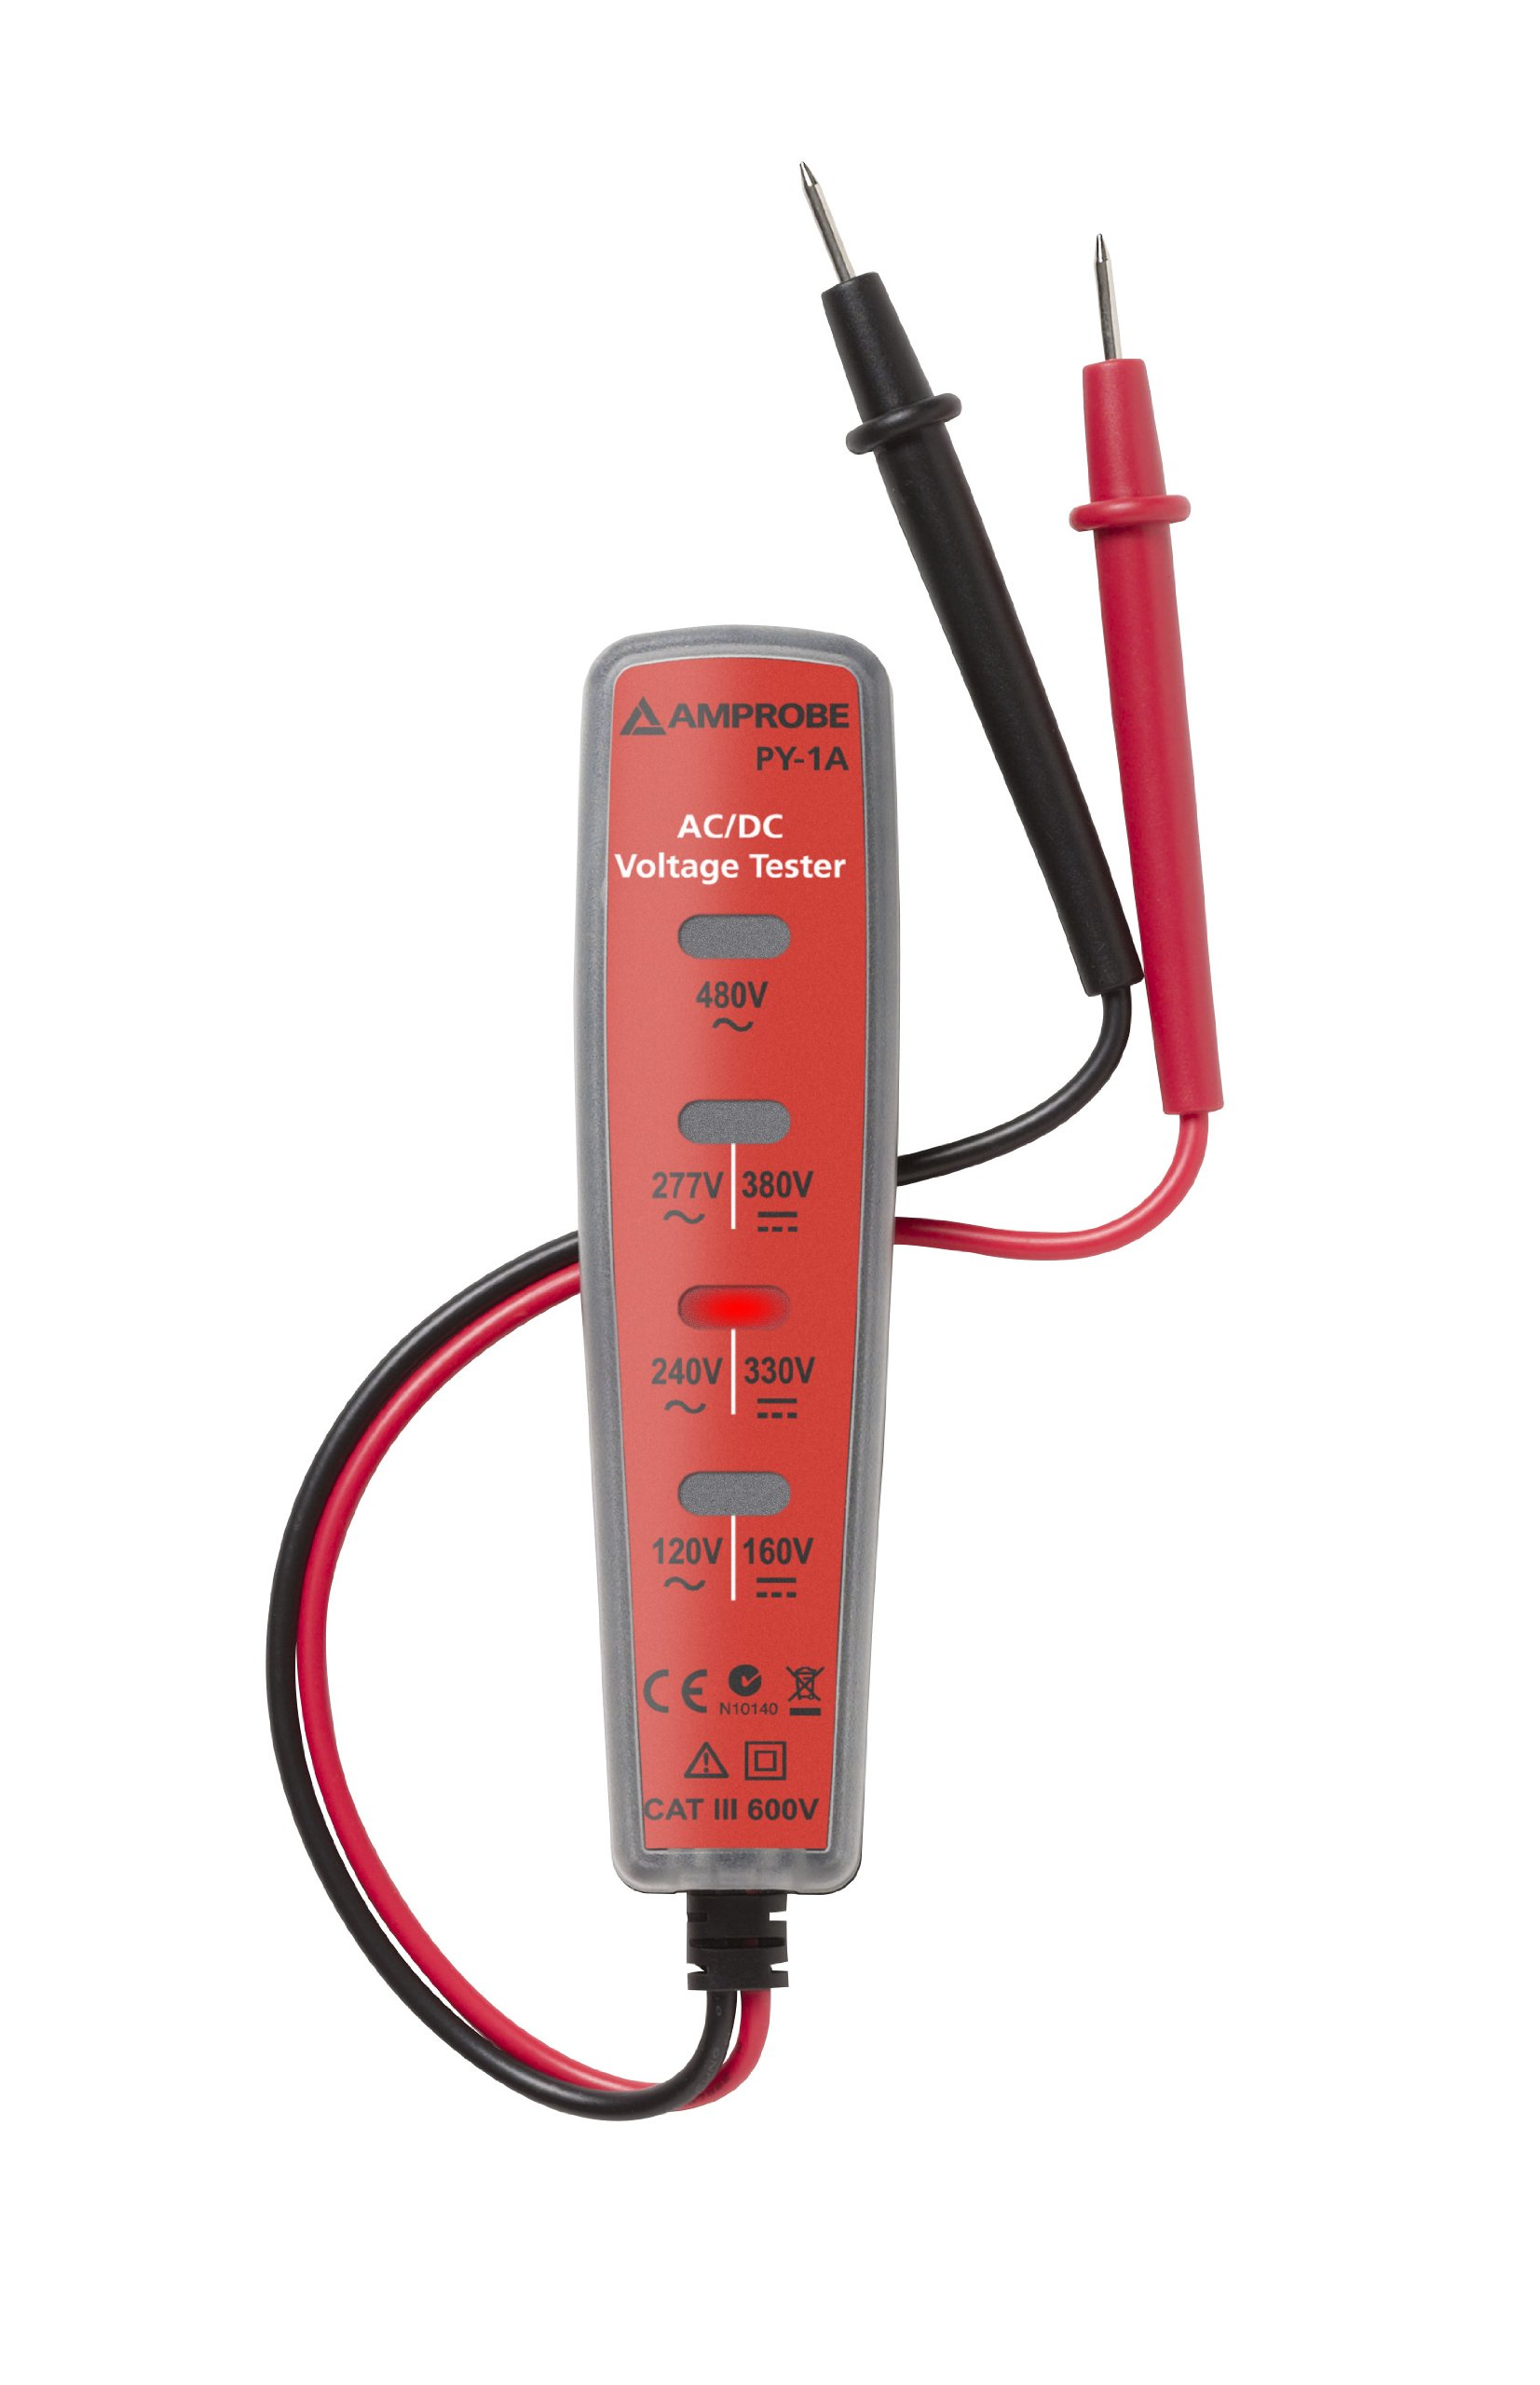 110-460 Volts Way Tester Ideal For AC And CD Multi Voltage Circuit Tester